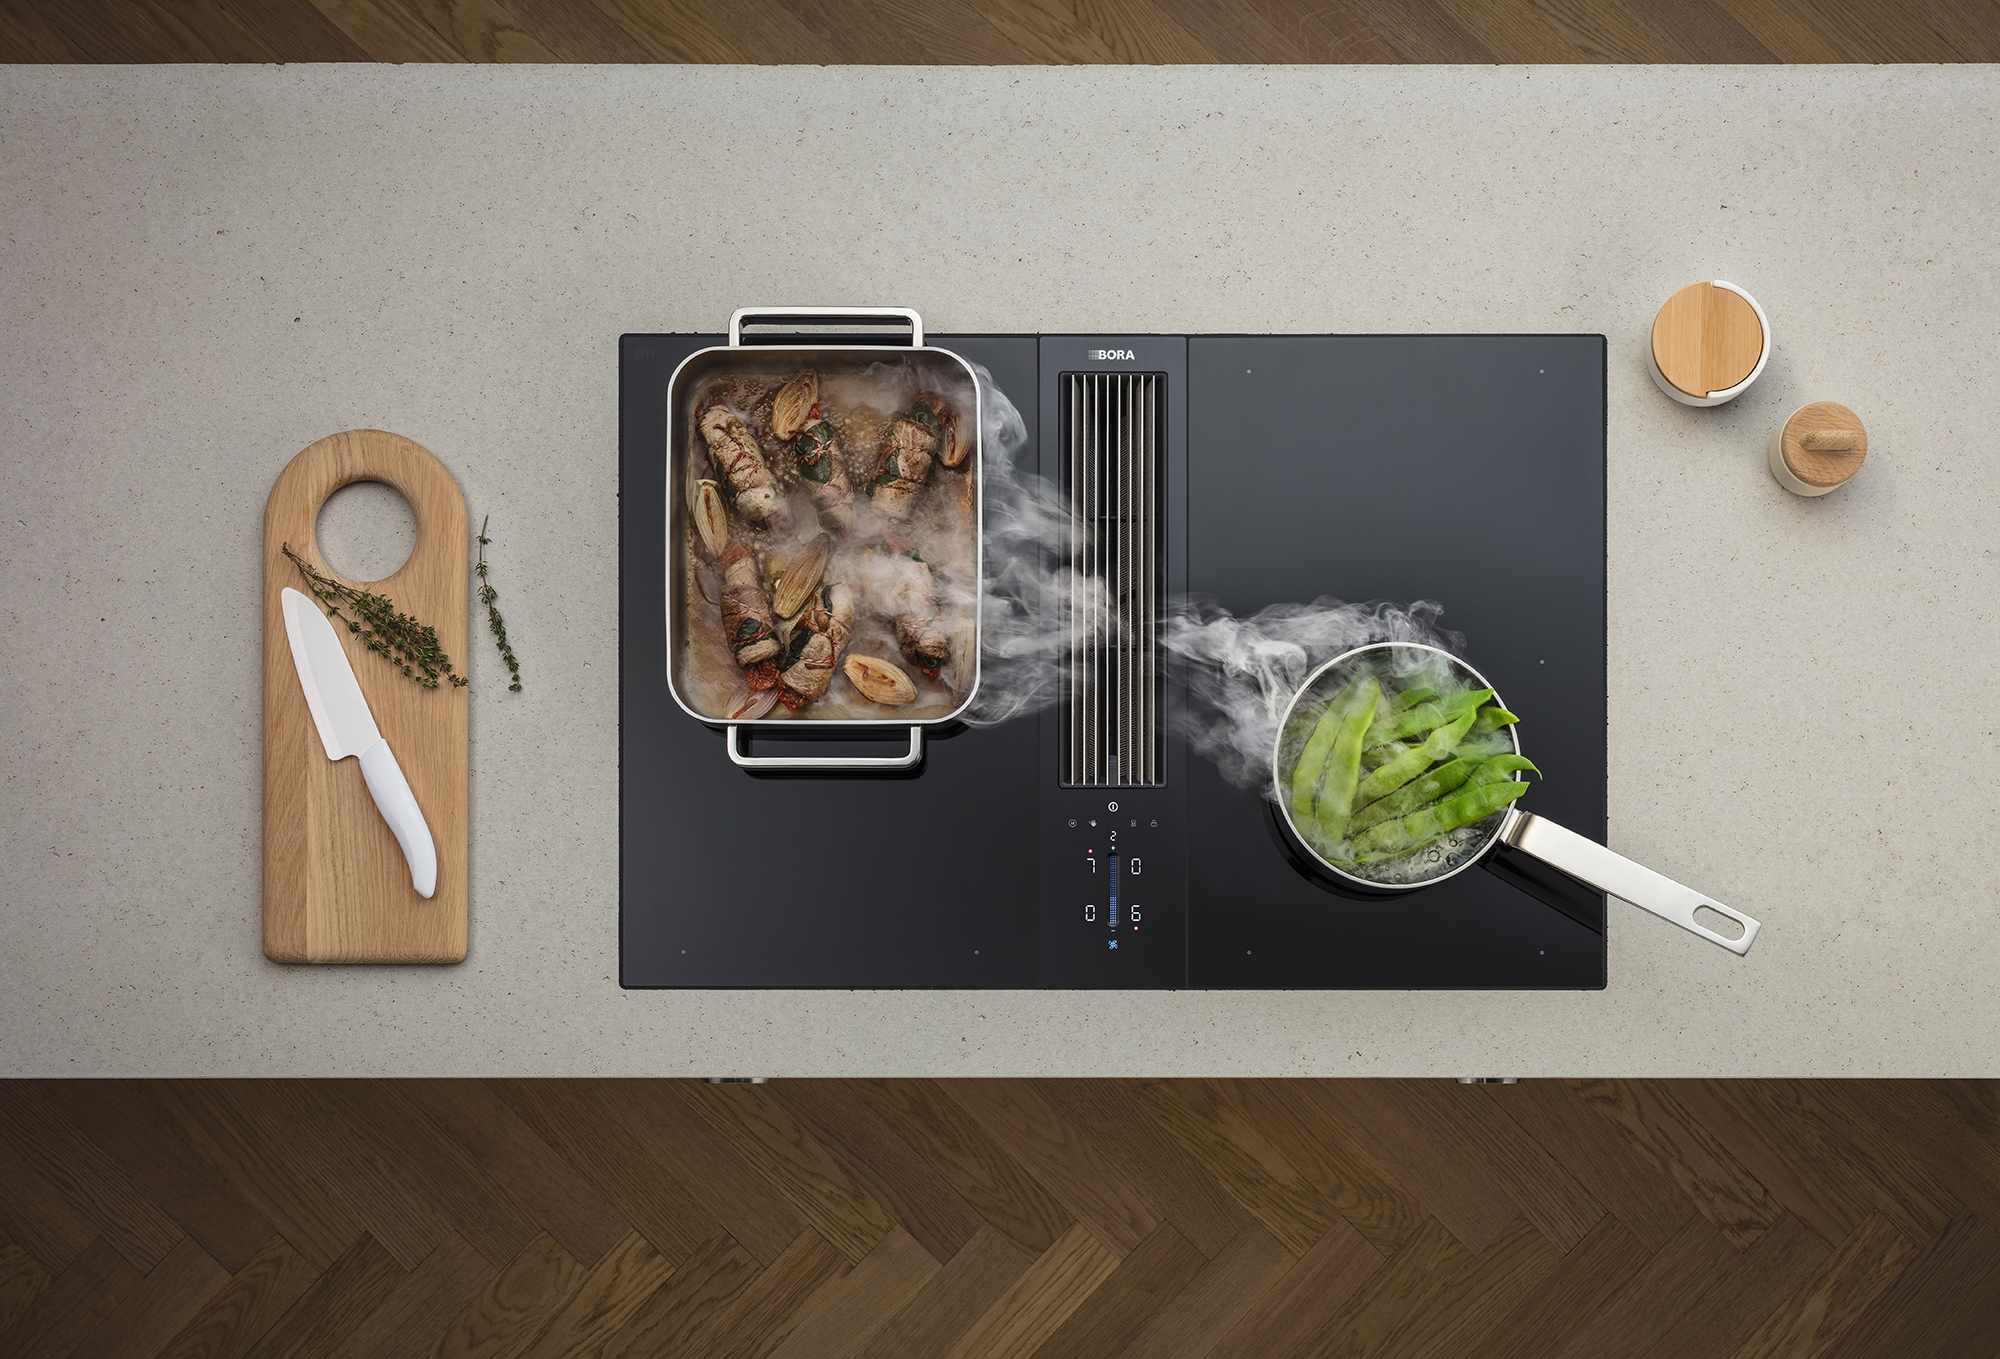 Bora Classic 2.0 Induction Hob